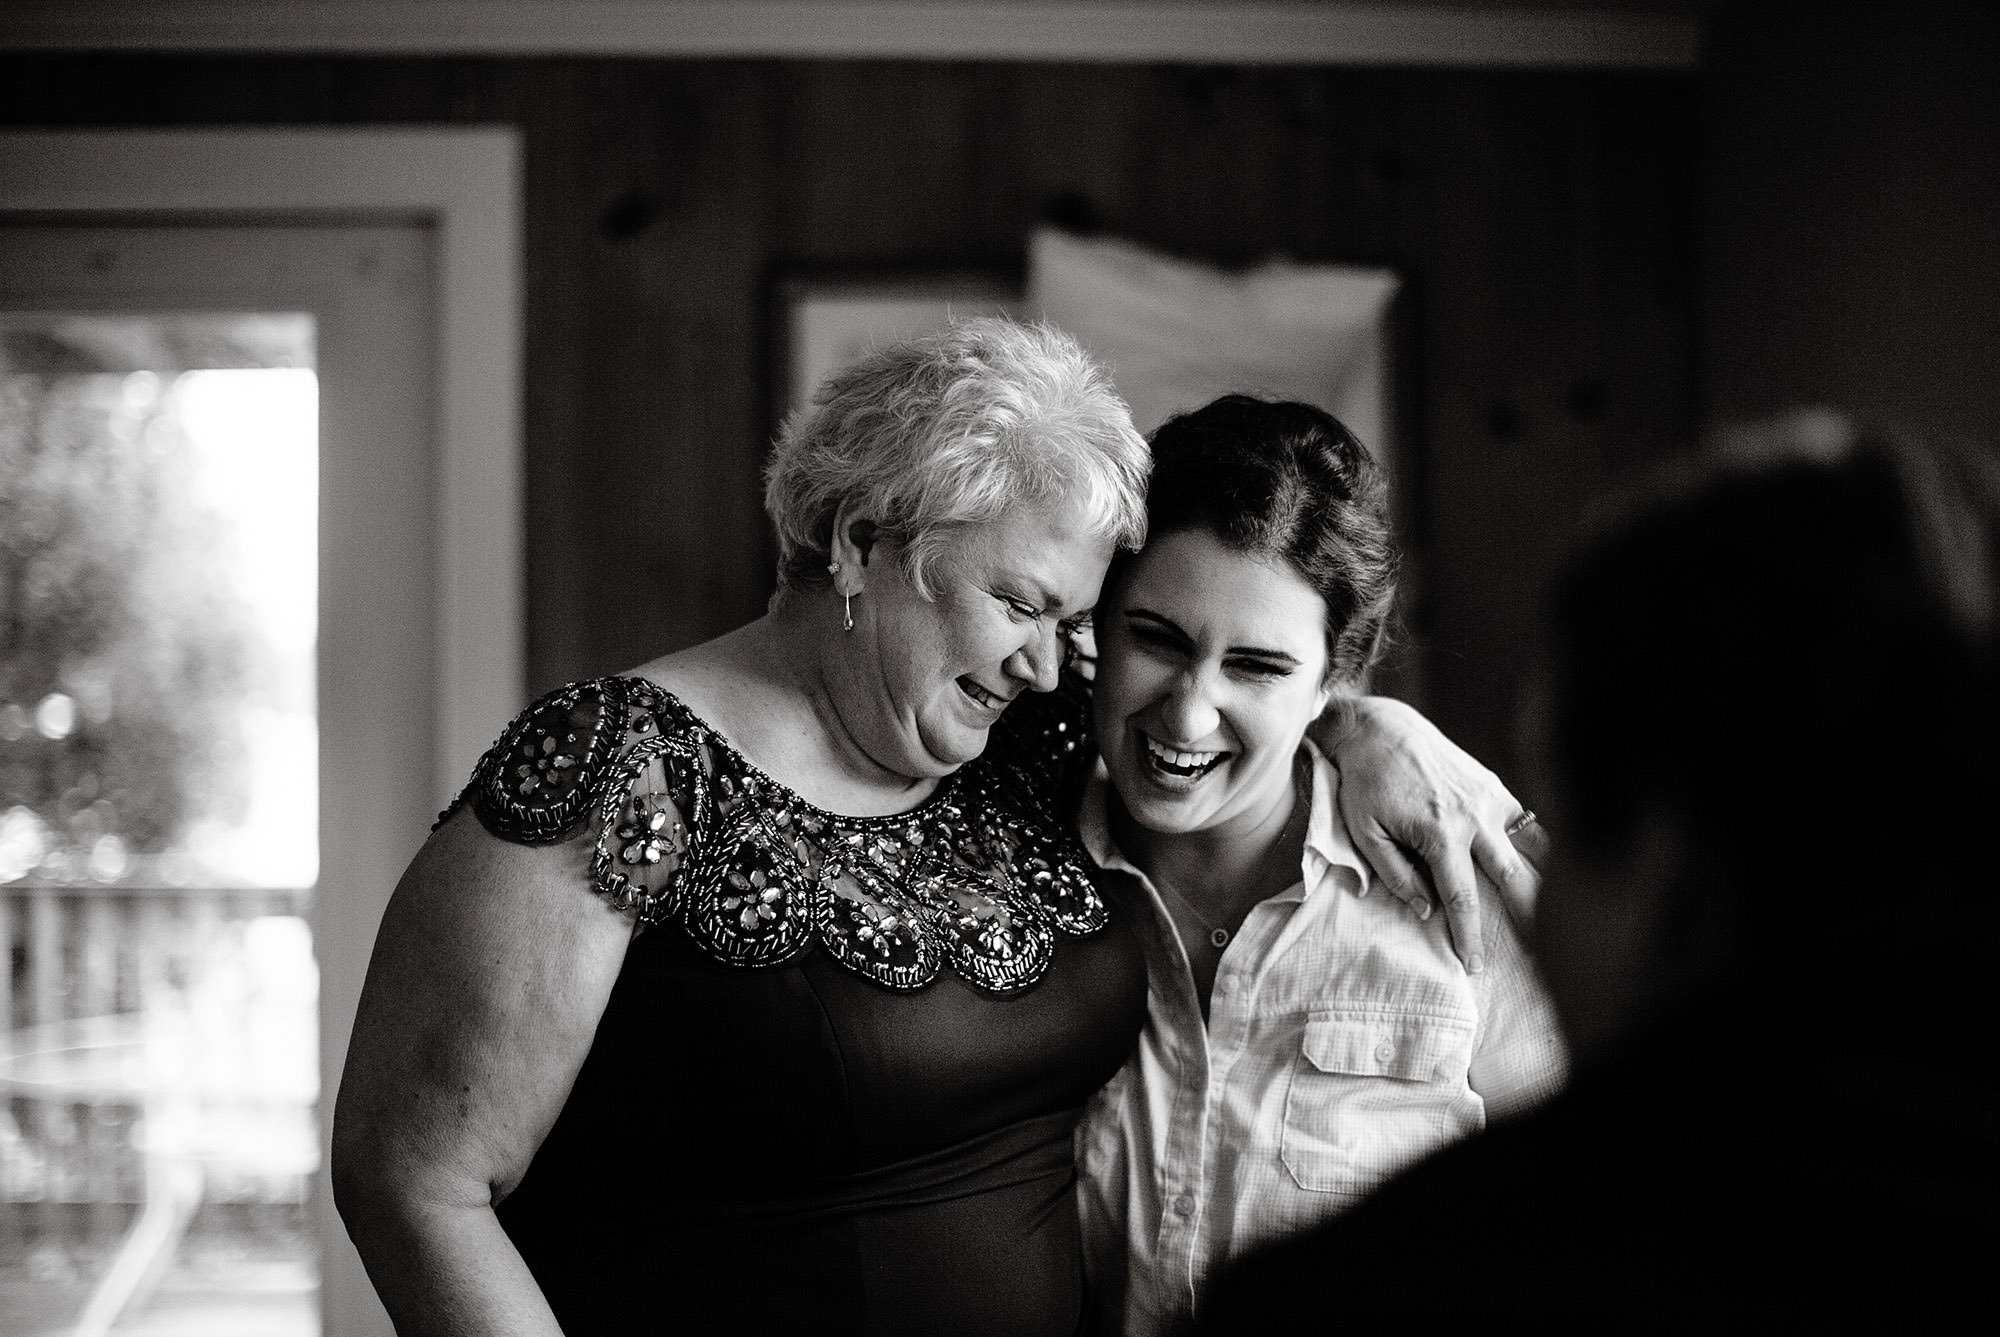 The bride hugs her mom prior to the wedding ceremony at Pelham House Resort.